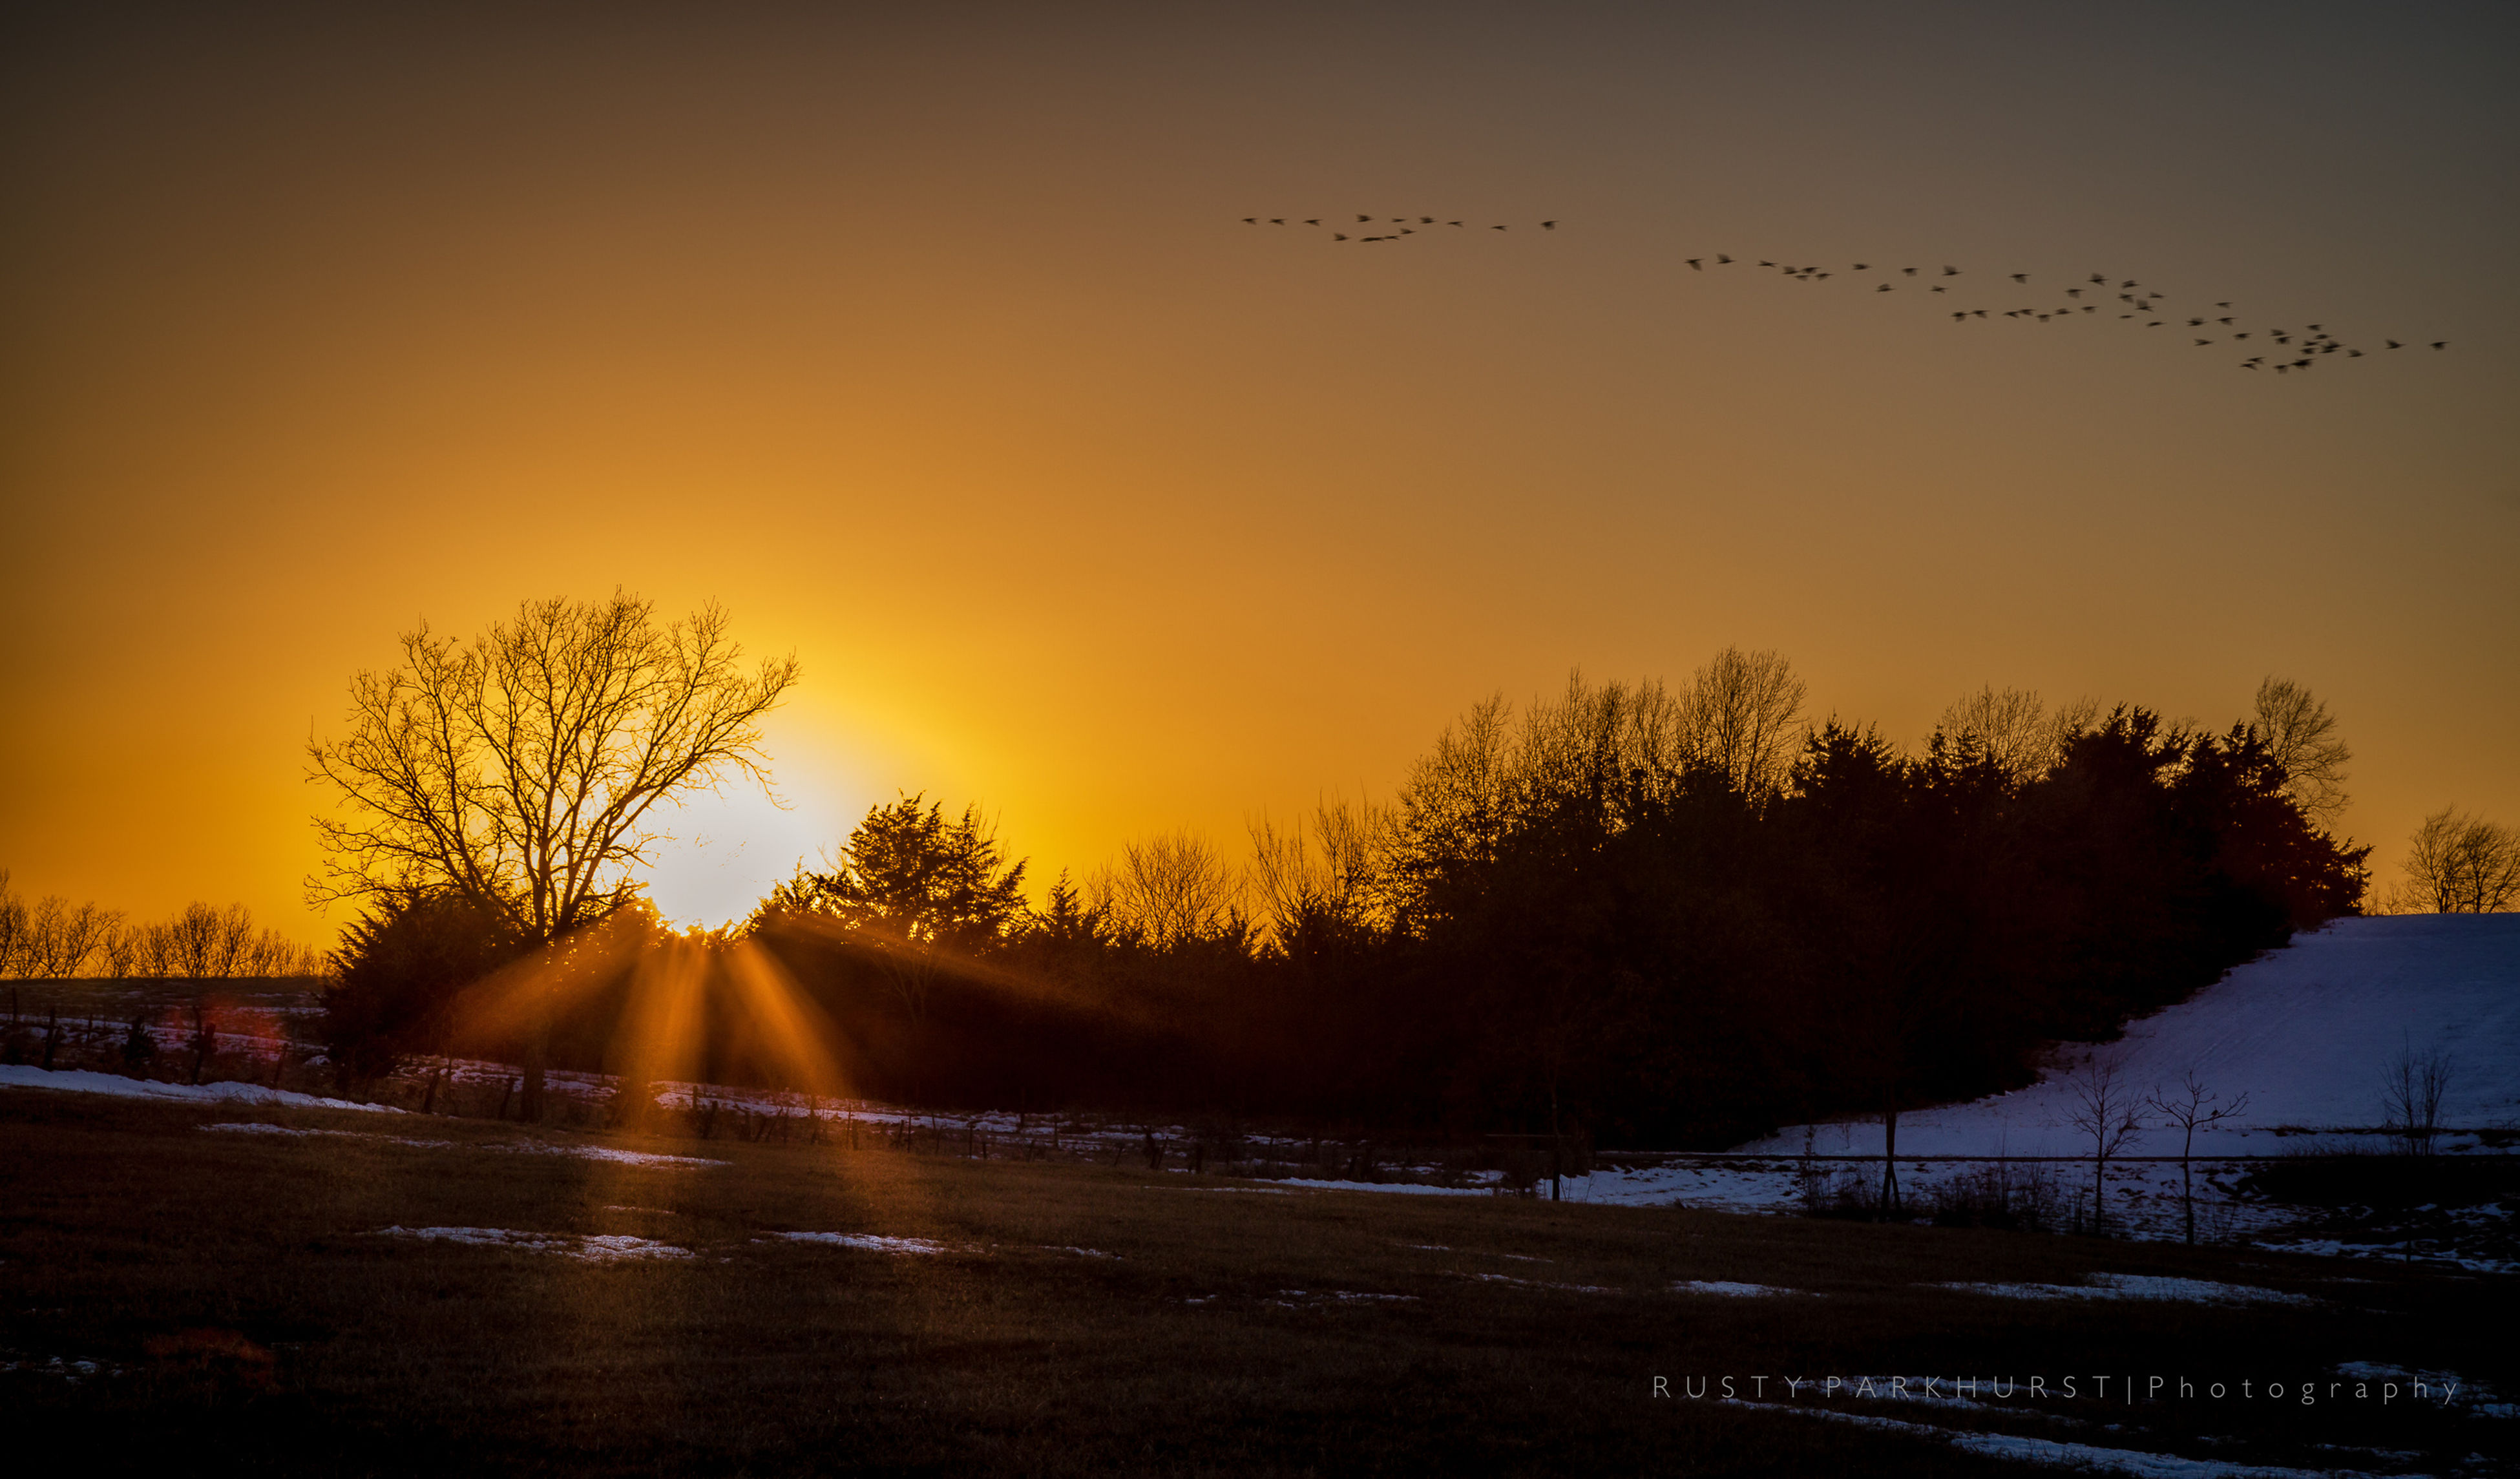 sunset, sun, tree, tranquility, tranquil scene, scenics, beauty in nature, nature, orange color, sunlight, idyllic, sky, outdoors, no people, landscape, the way forward, sunbeam, growth, non-urban scene, remote